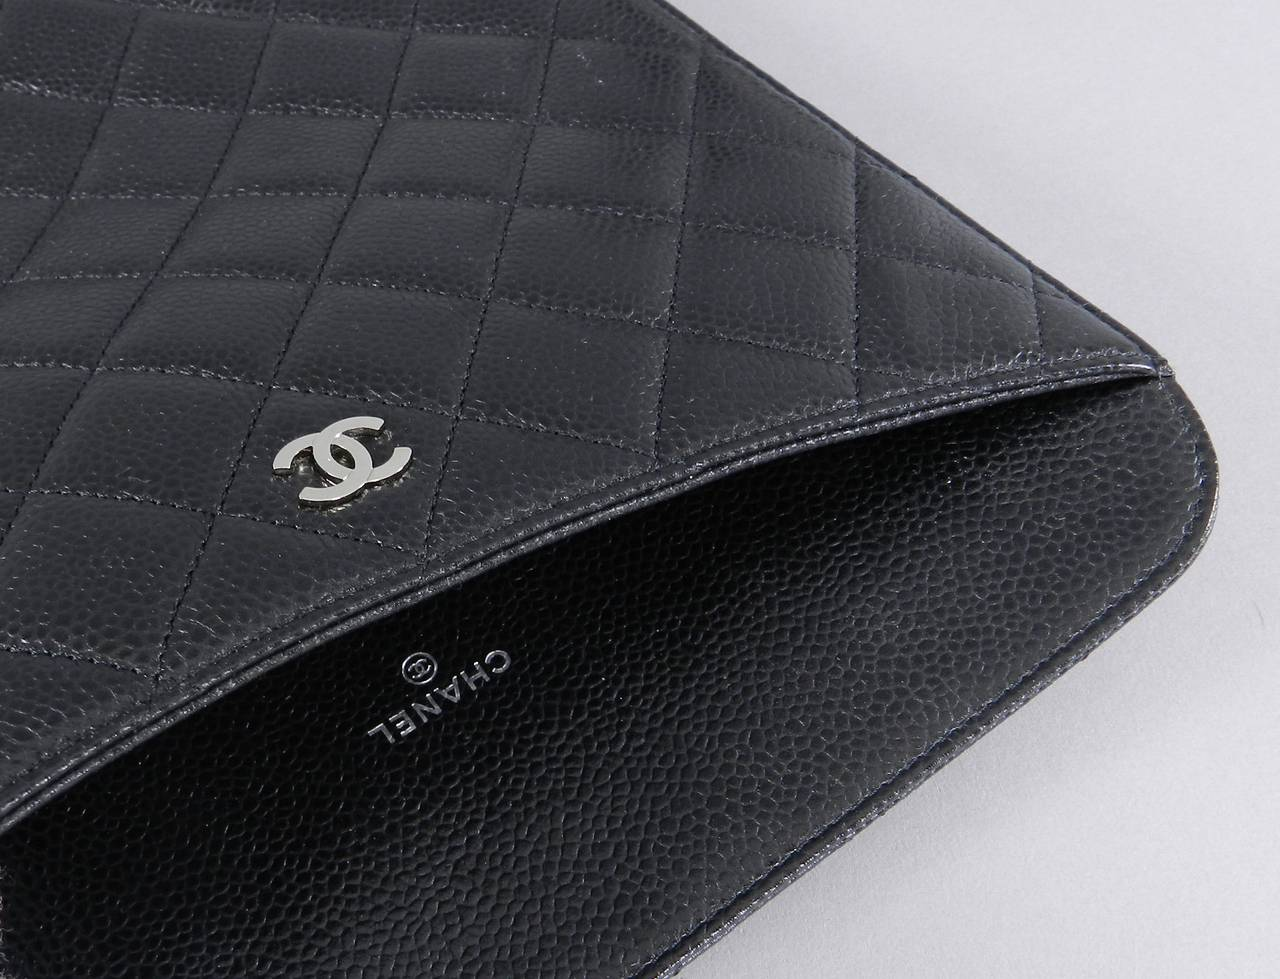 Women's Chanel Black Caviar Ipad Case - Silvertone Hardware For Sale